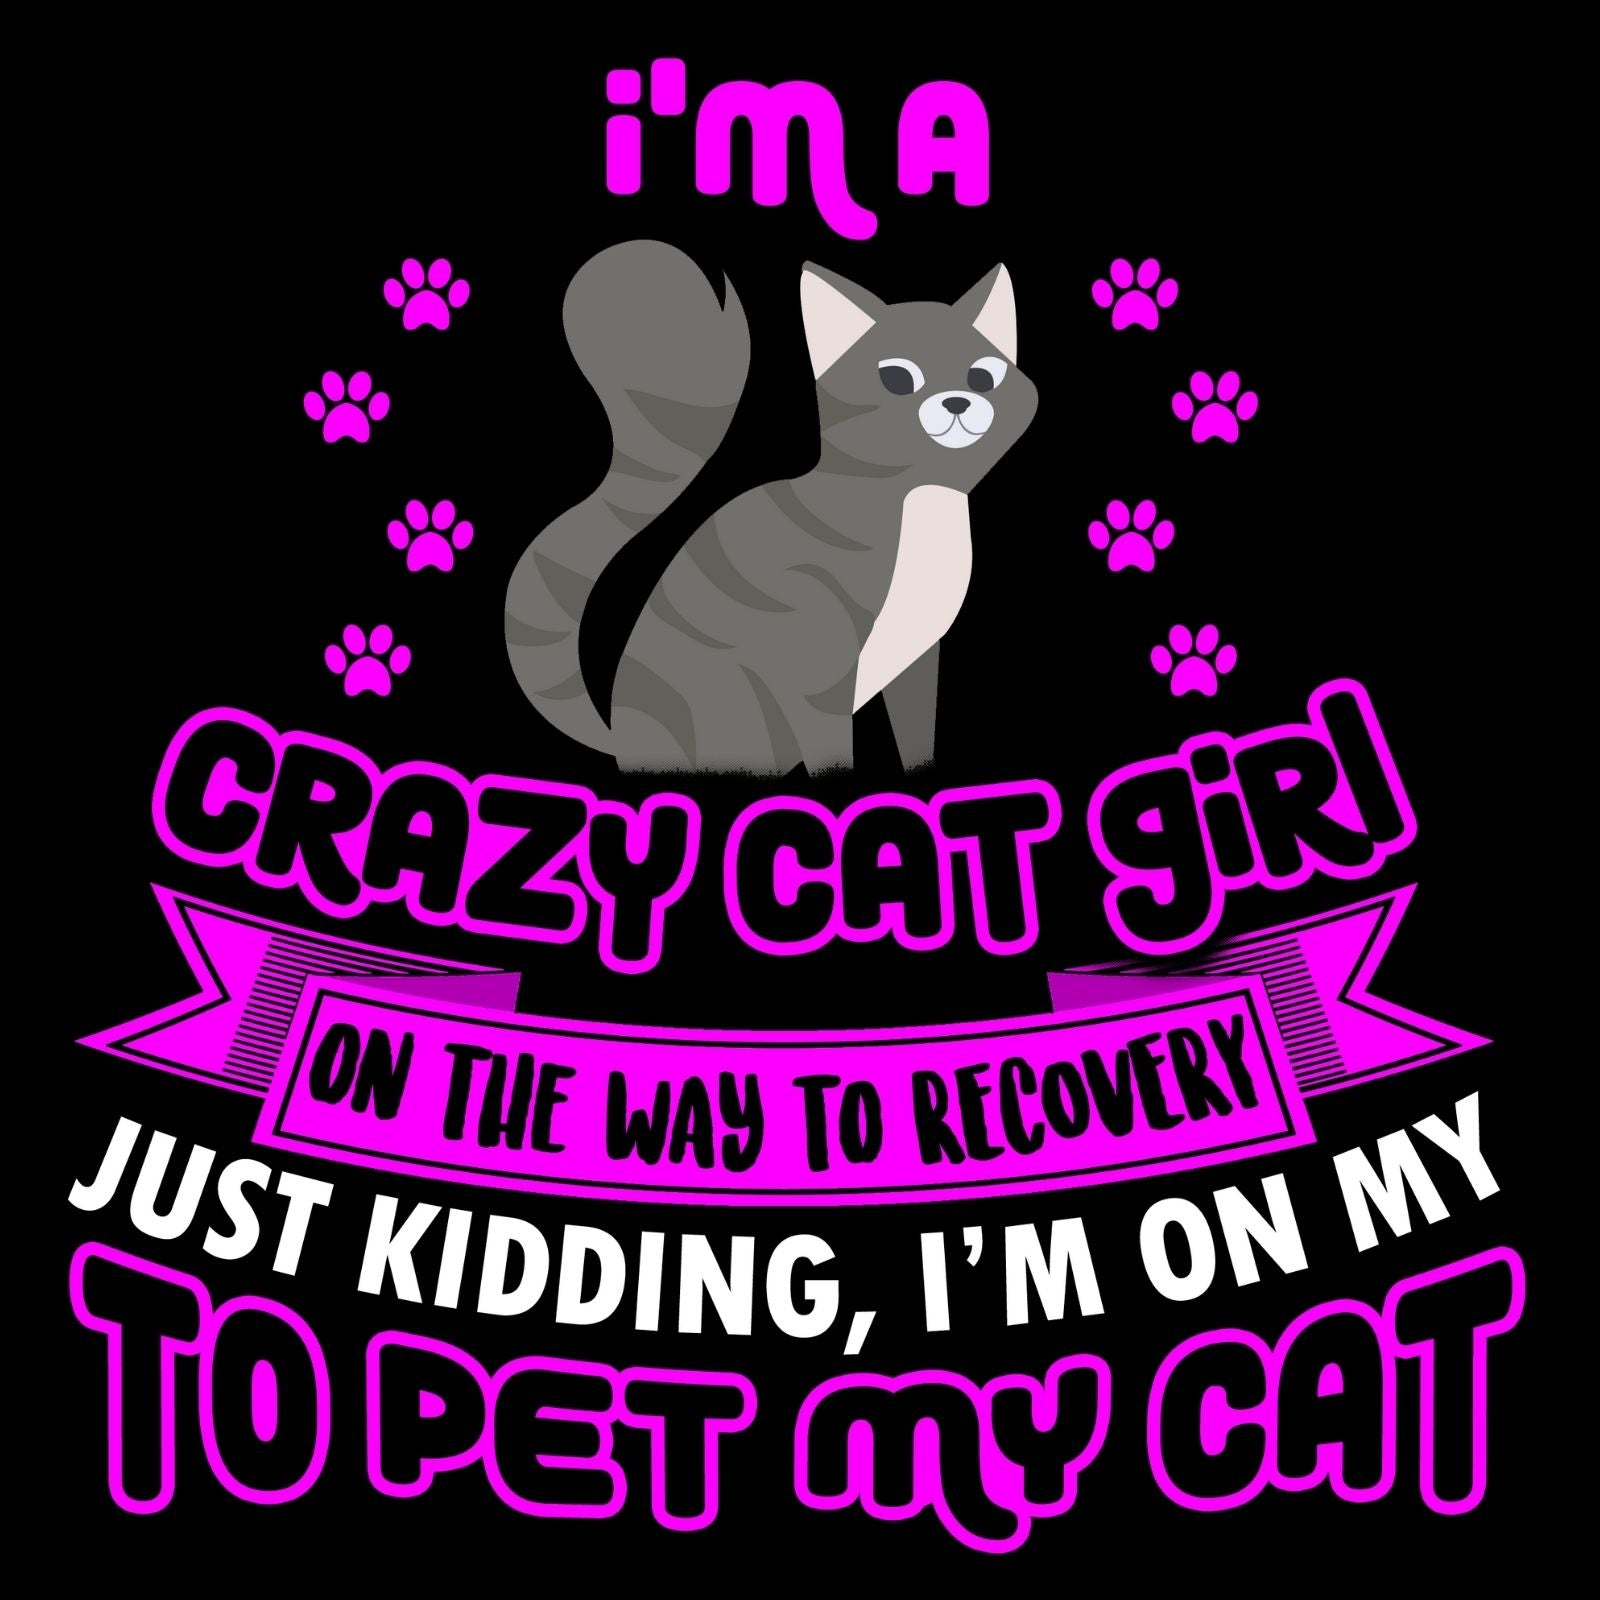 I'm A Crazy Cat Girl On The Way To Recovery Just Kidding I'm On My Way To Pet My Cat - Bastard Graphics